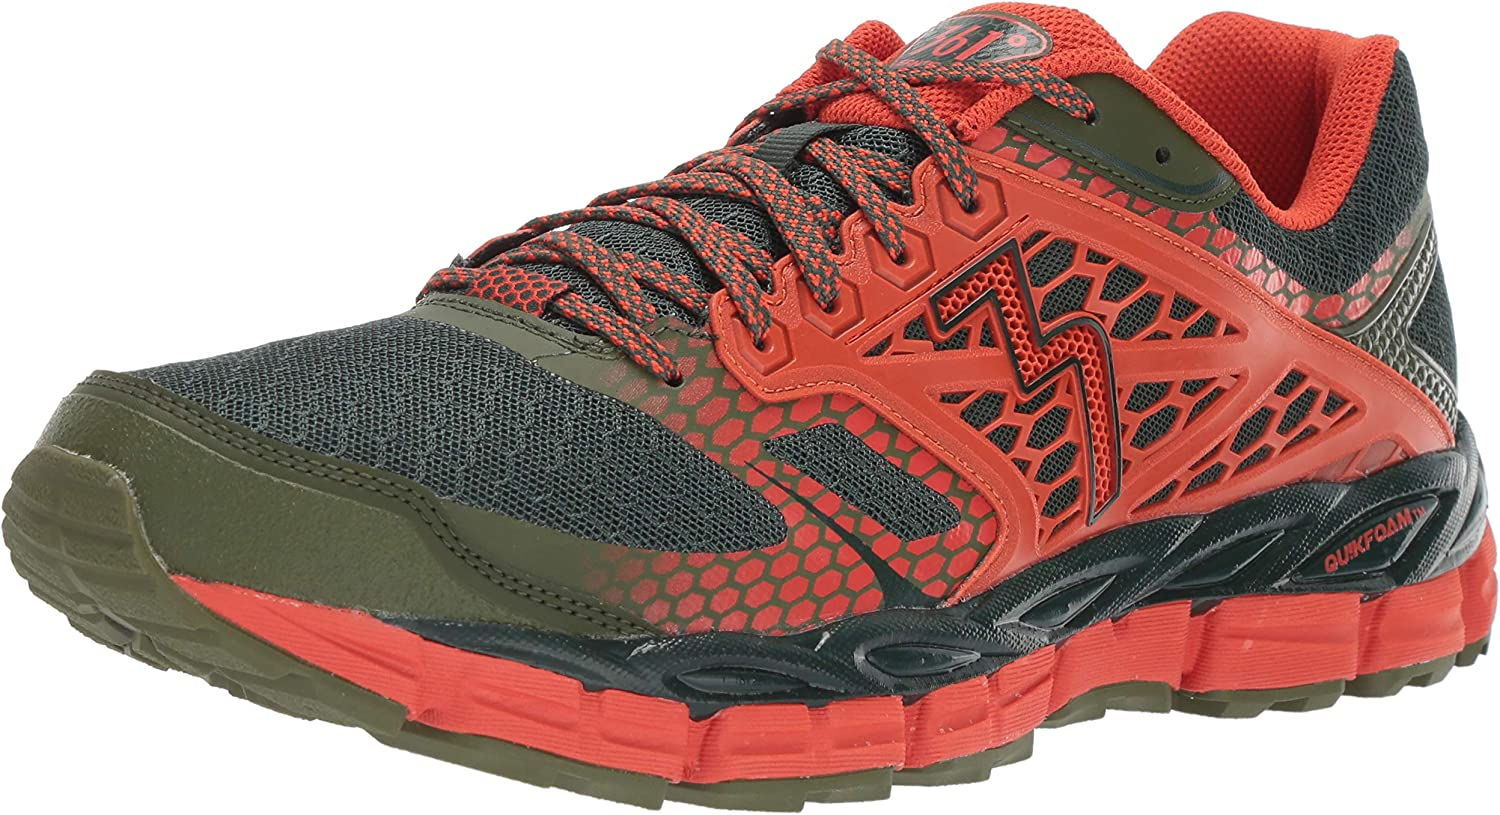 Image of 361° Men's Santiago-M Trail Runner, Cyprus/Poppy, 10.5 M US Trail Running